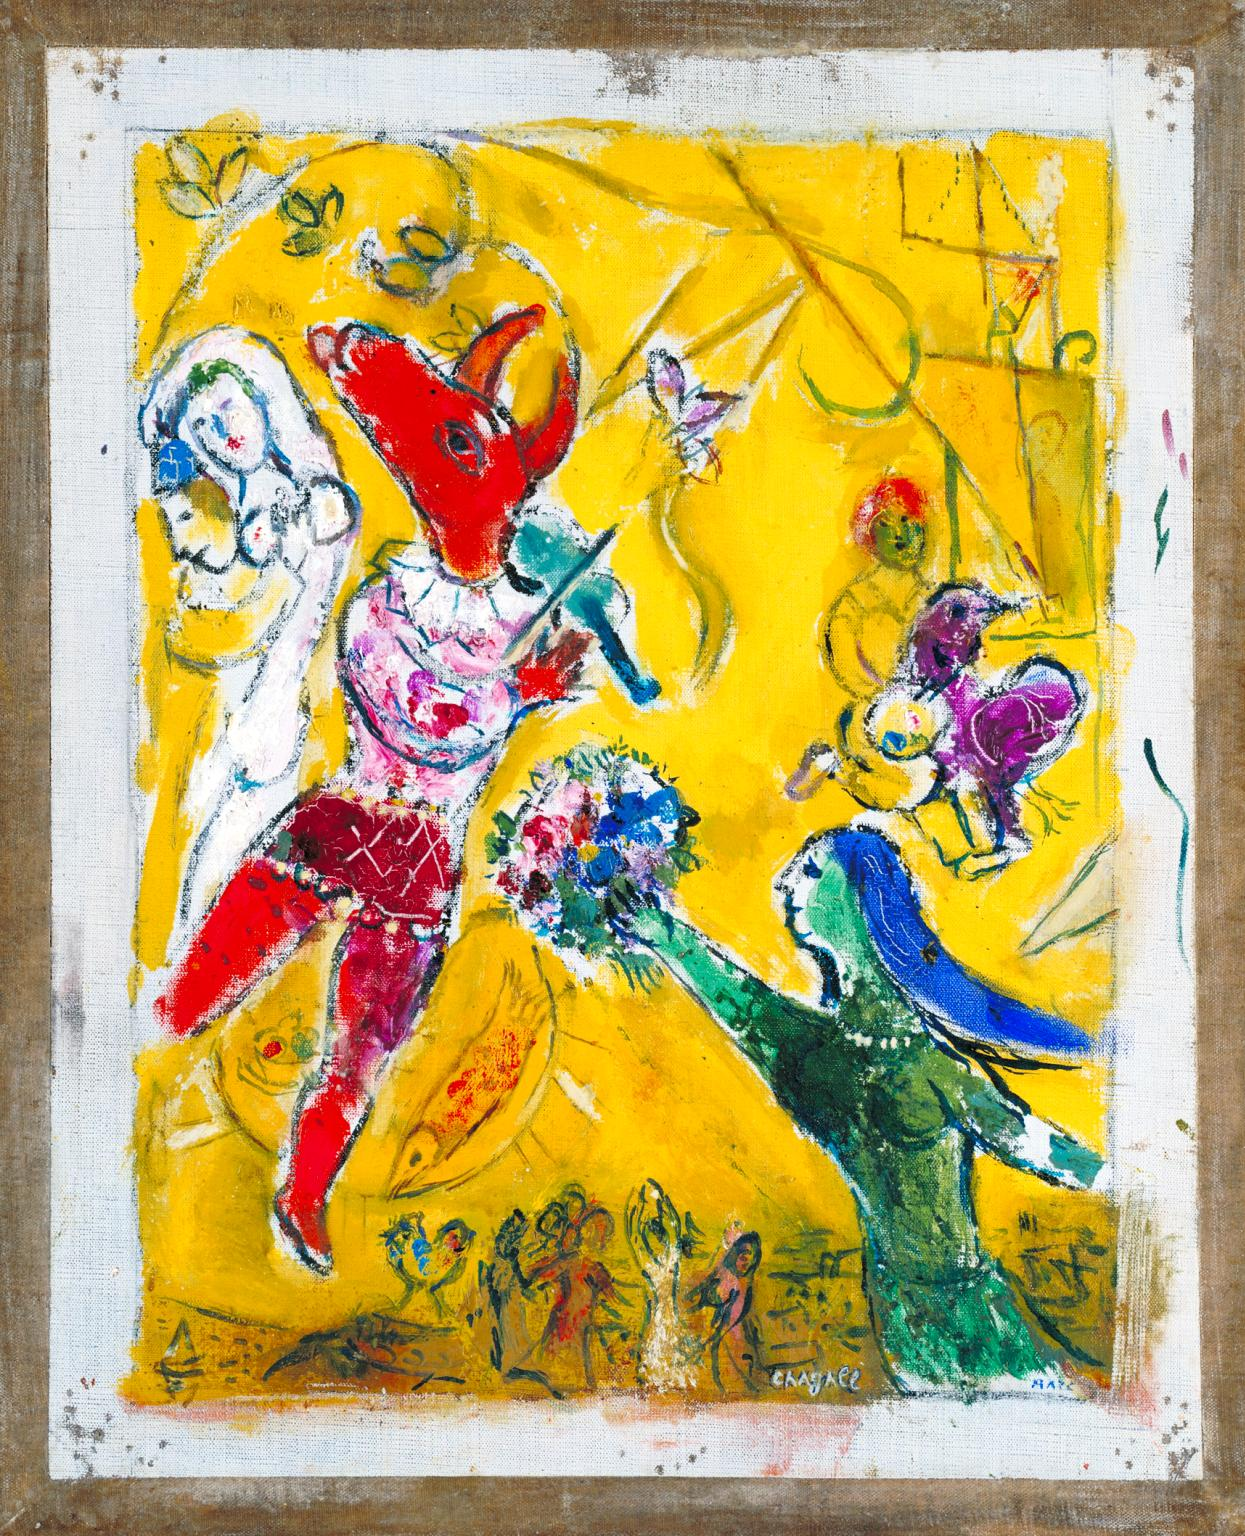 The Dance and the Circus 1950 by Marc Chagall 1887-1985